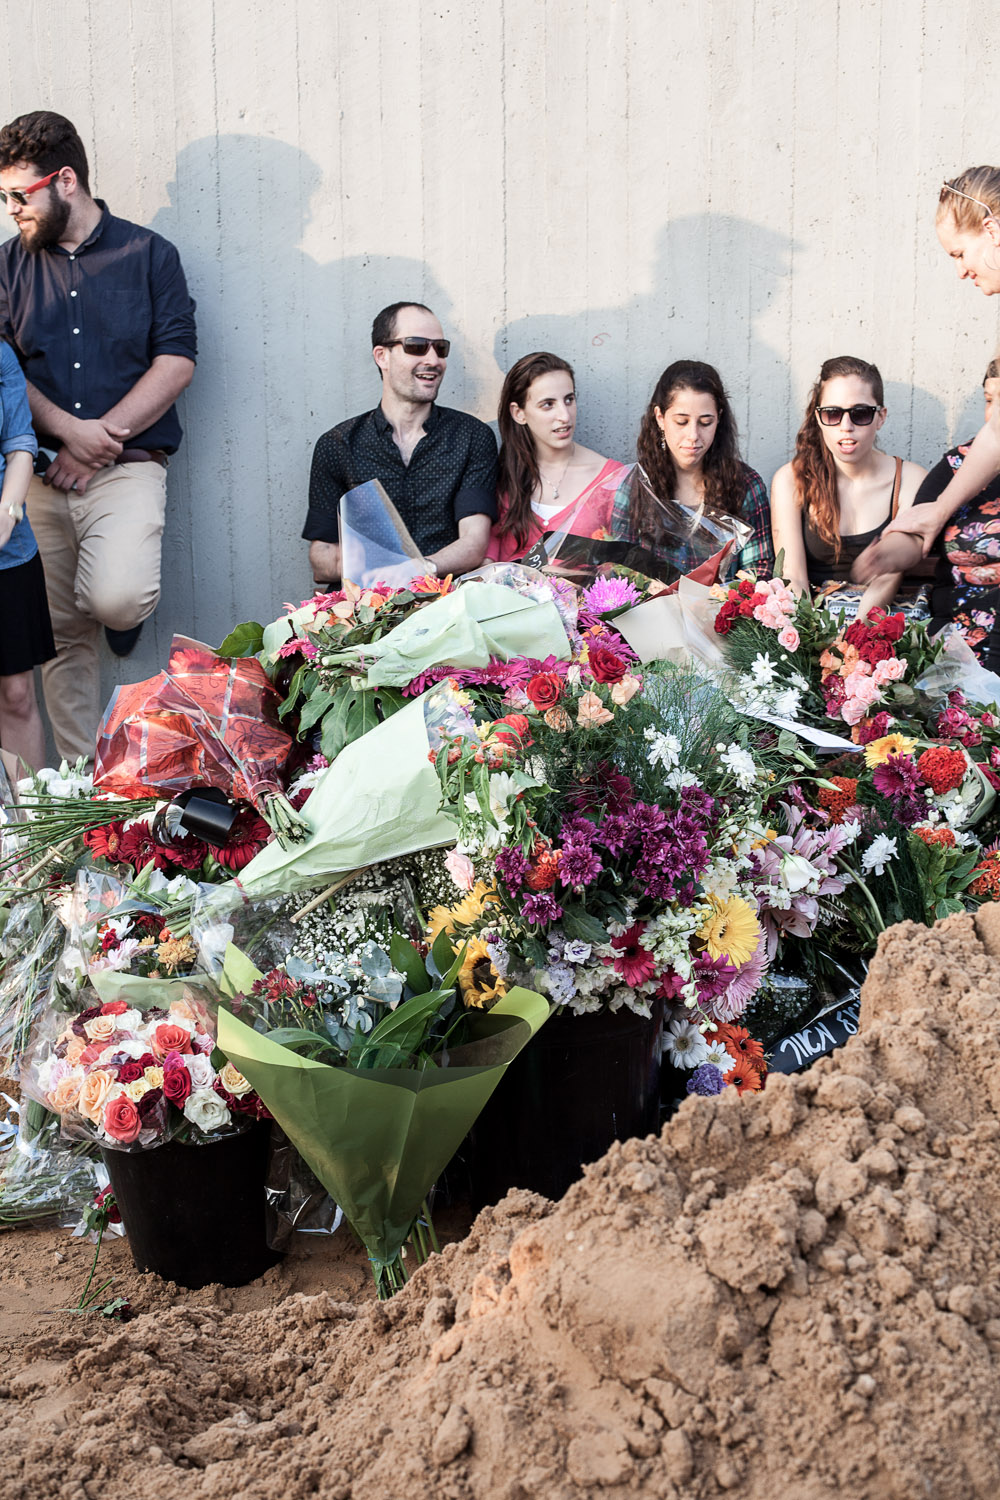 At the funeral of Esti Weinstein (1956 – 2016), a former Ultra-Orthodox who committed suicide after she left her religious life seven years before Petah Tikva, July 2016